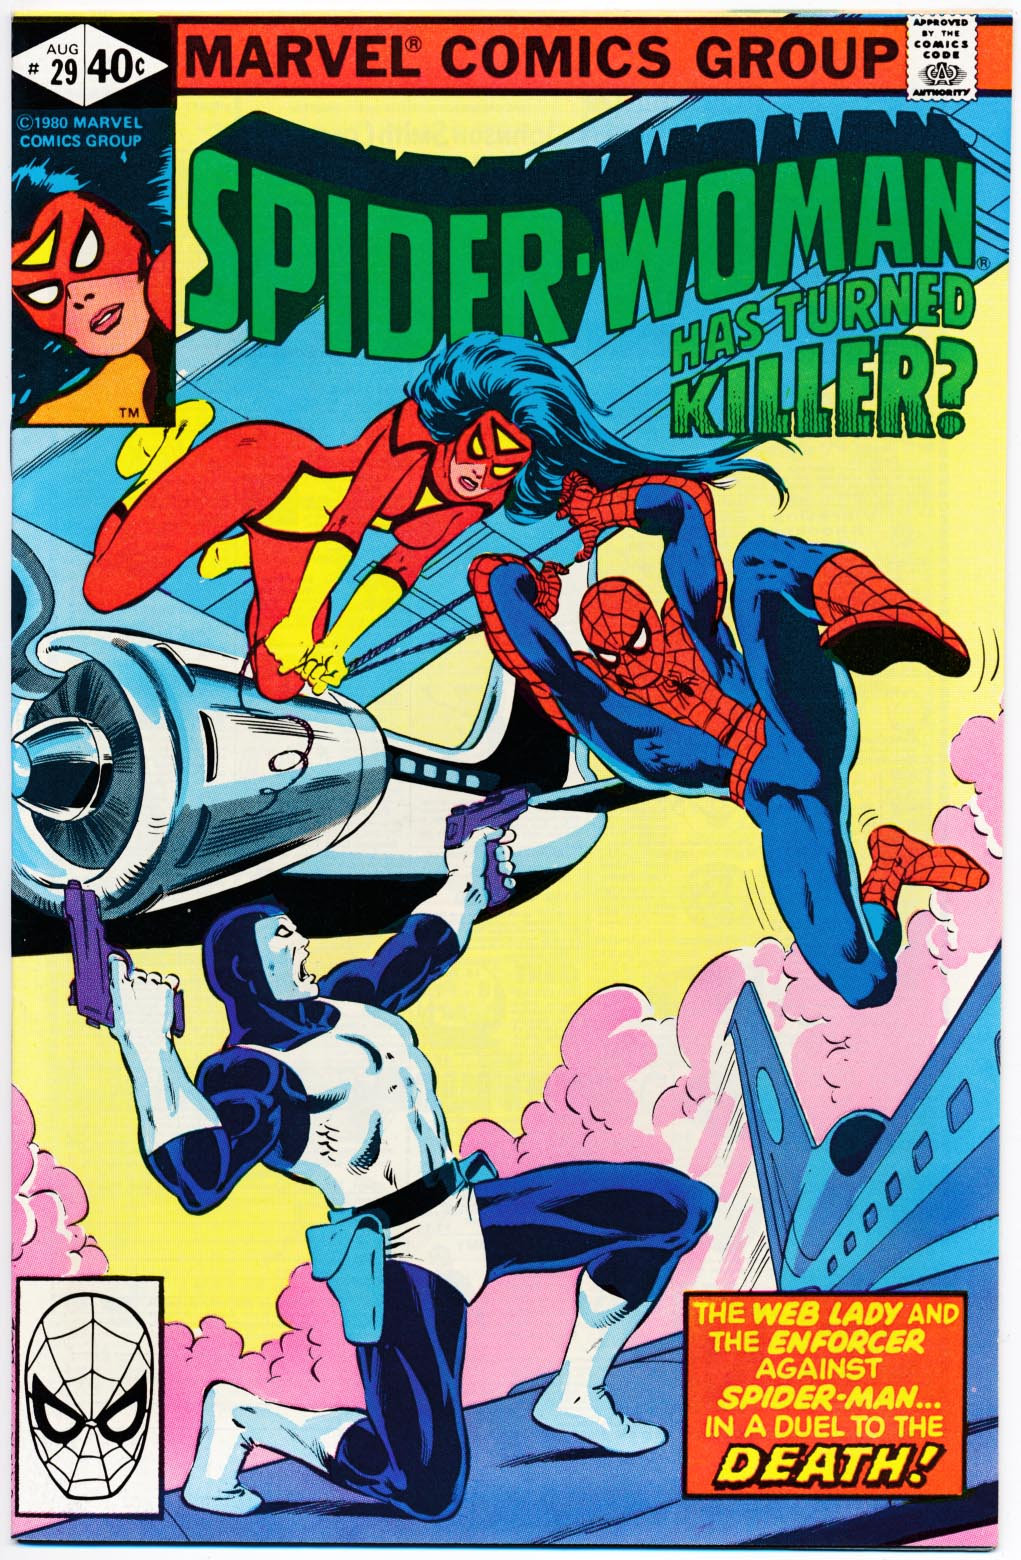 Spider-Woman vol 1 - 29 -VFNM